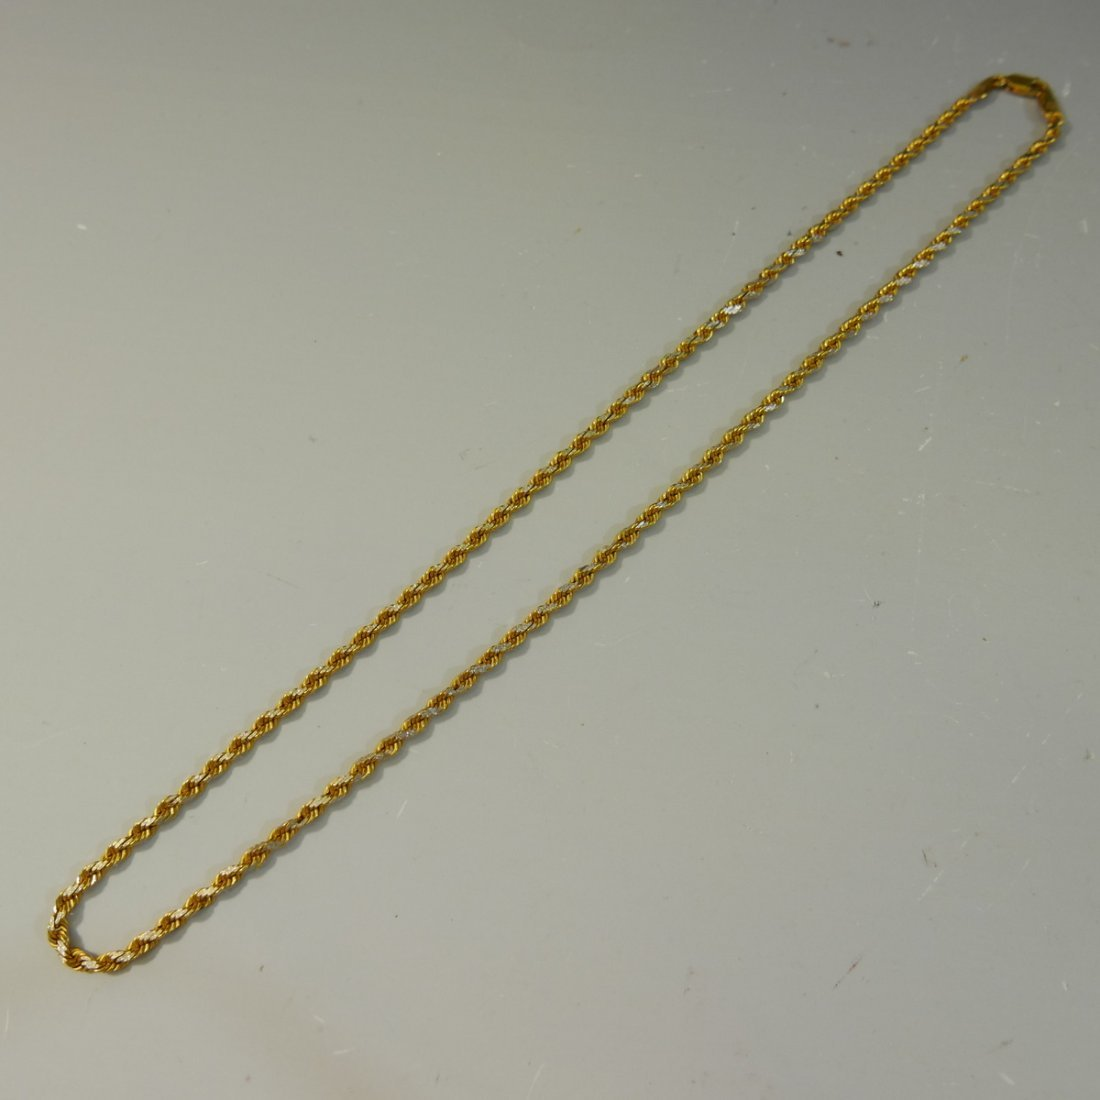 22K GOLD CHAIN NECKLACE - 24 GRAMS